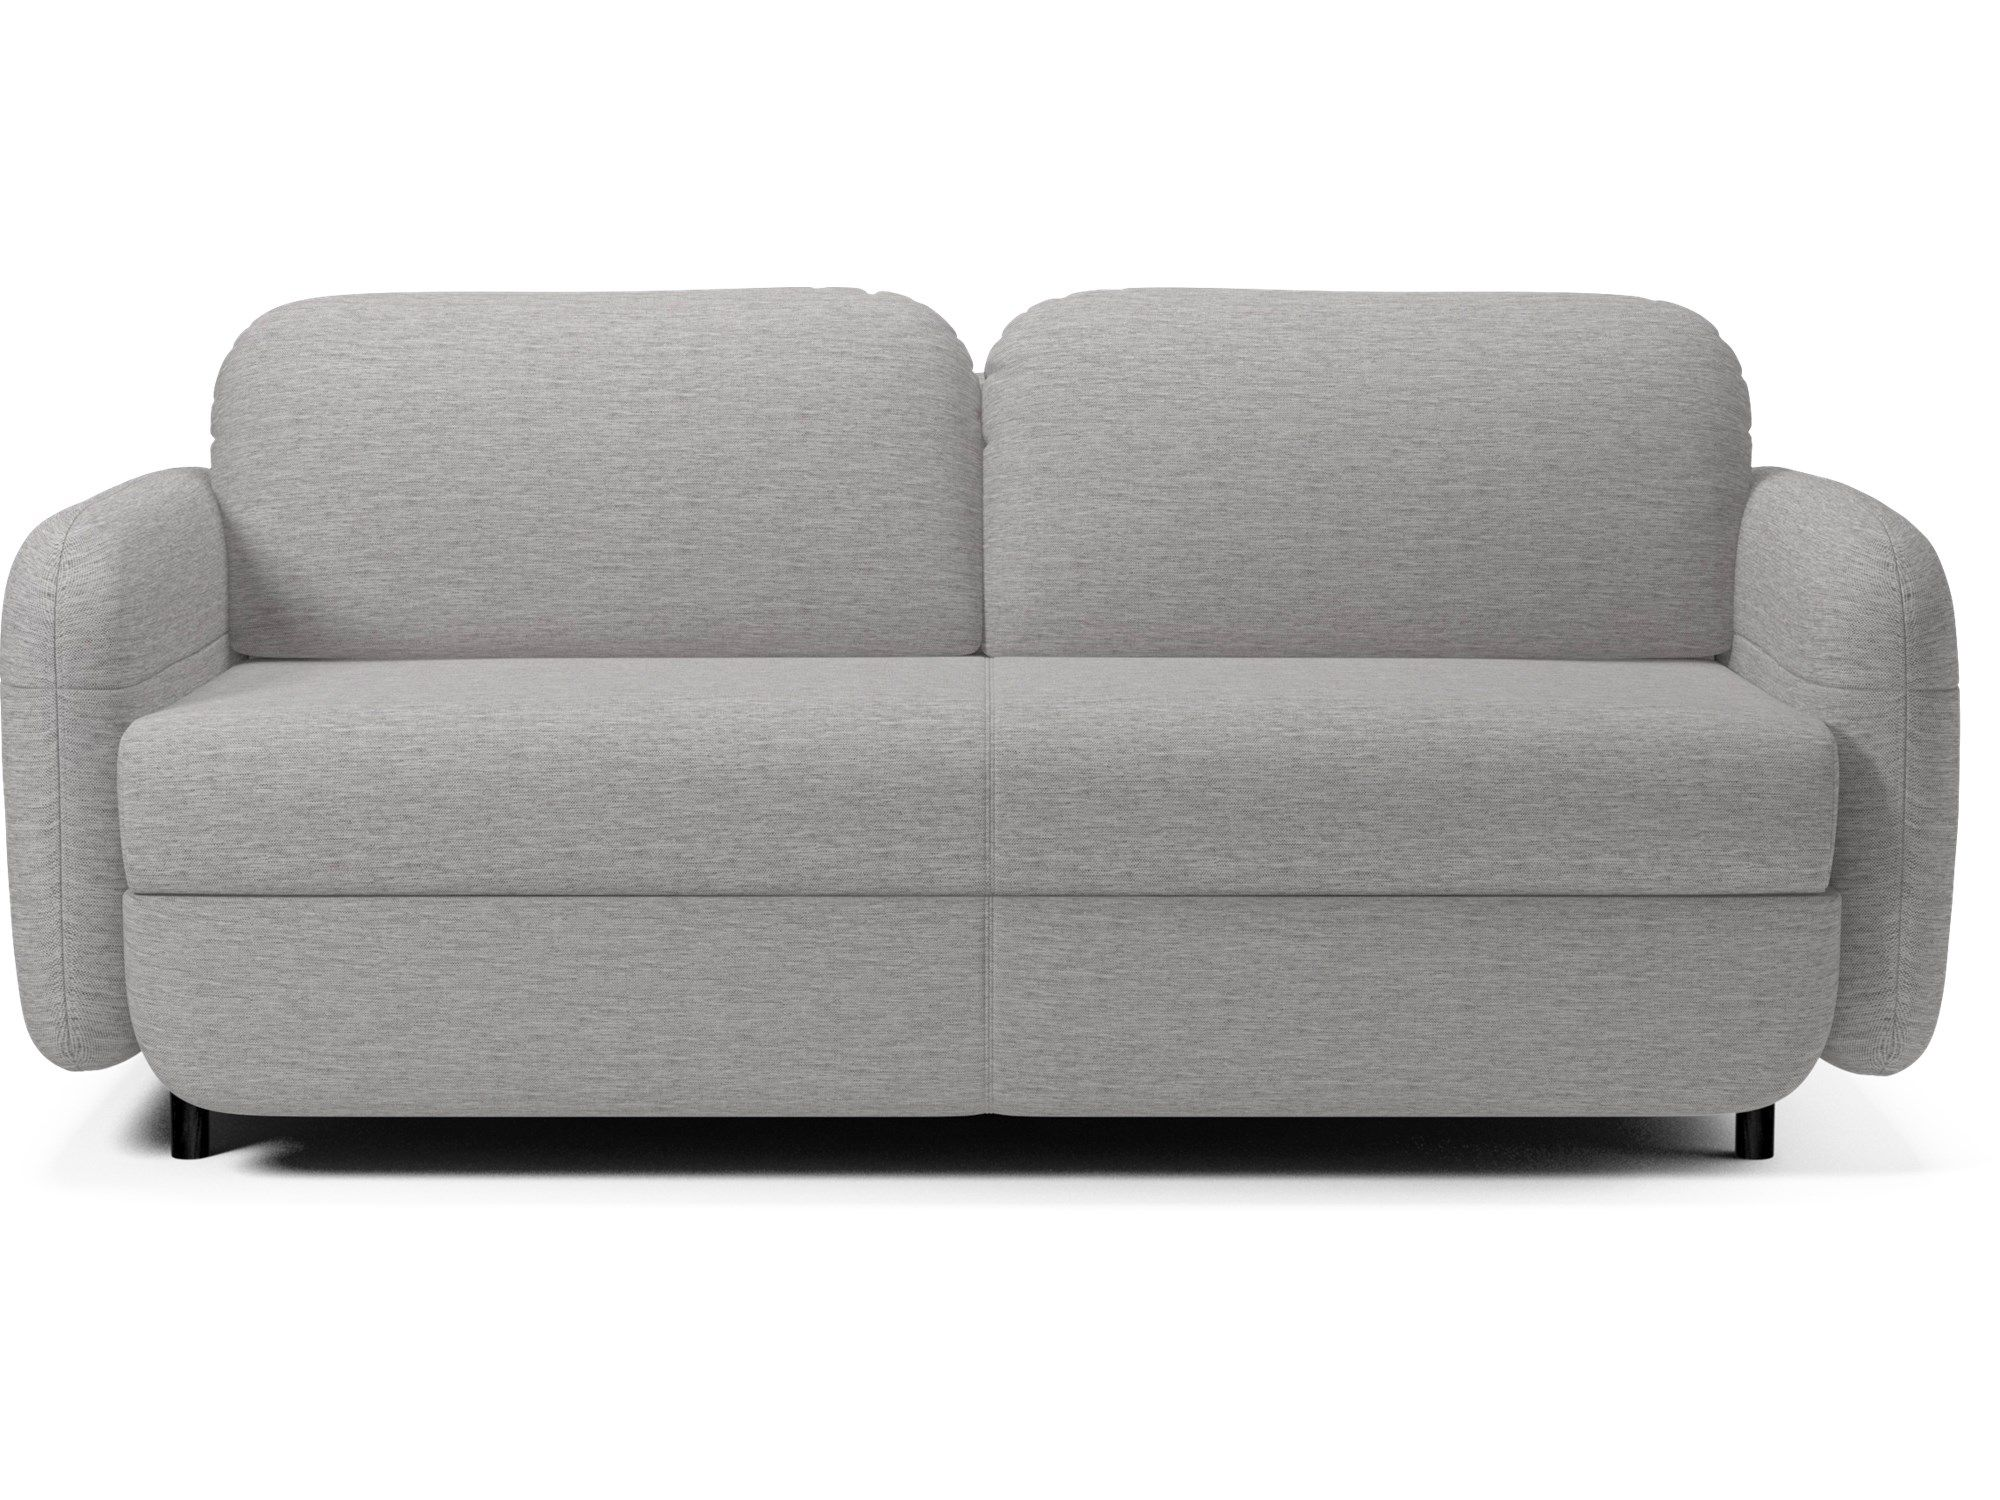 Bettsofa Mit Lattenrost Fluffy Sofa Bed Bolia Schlafsofa Sofa Sofa Bed Und 2 Seater